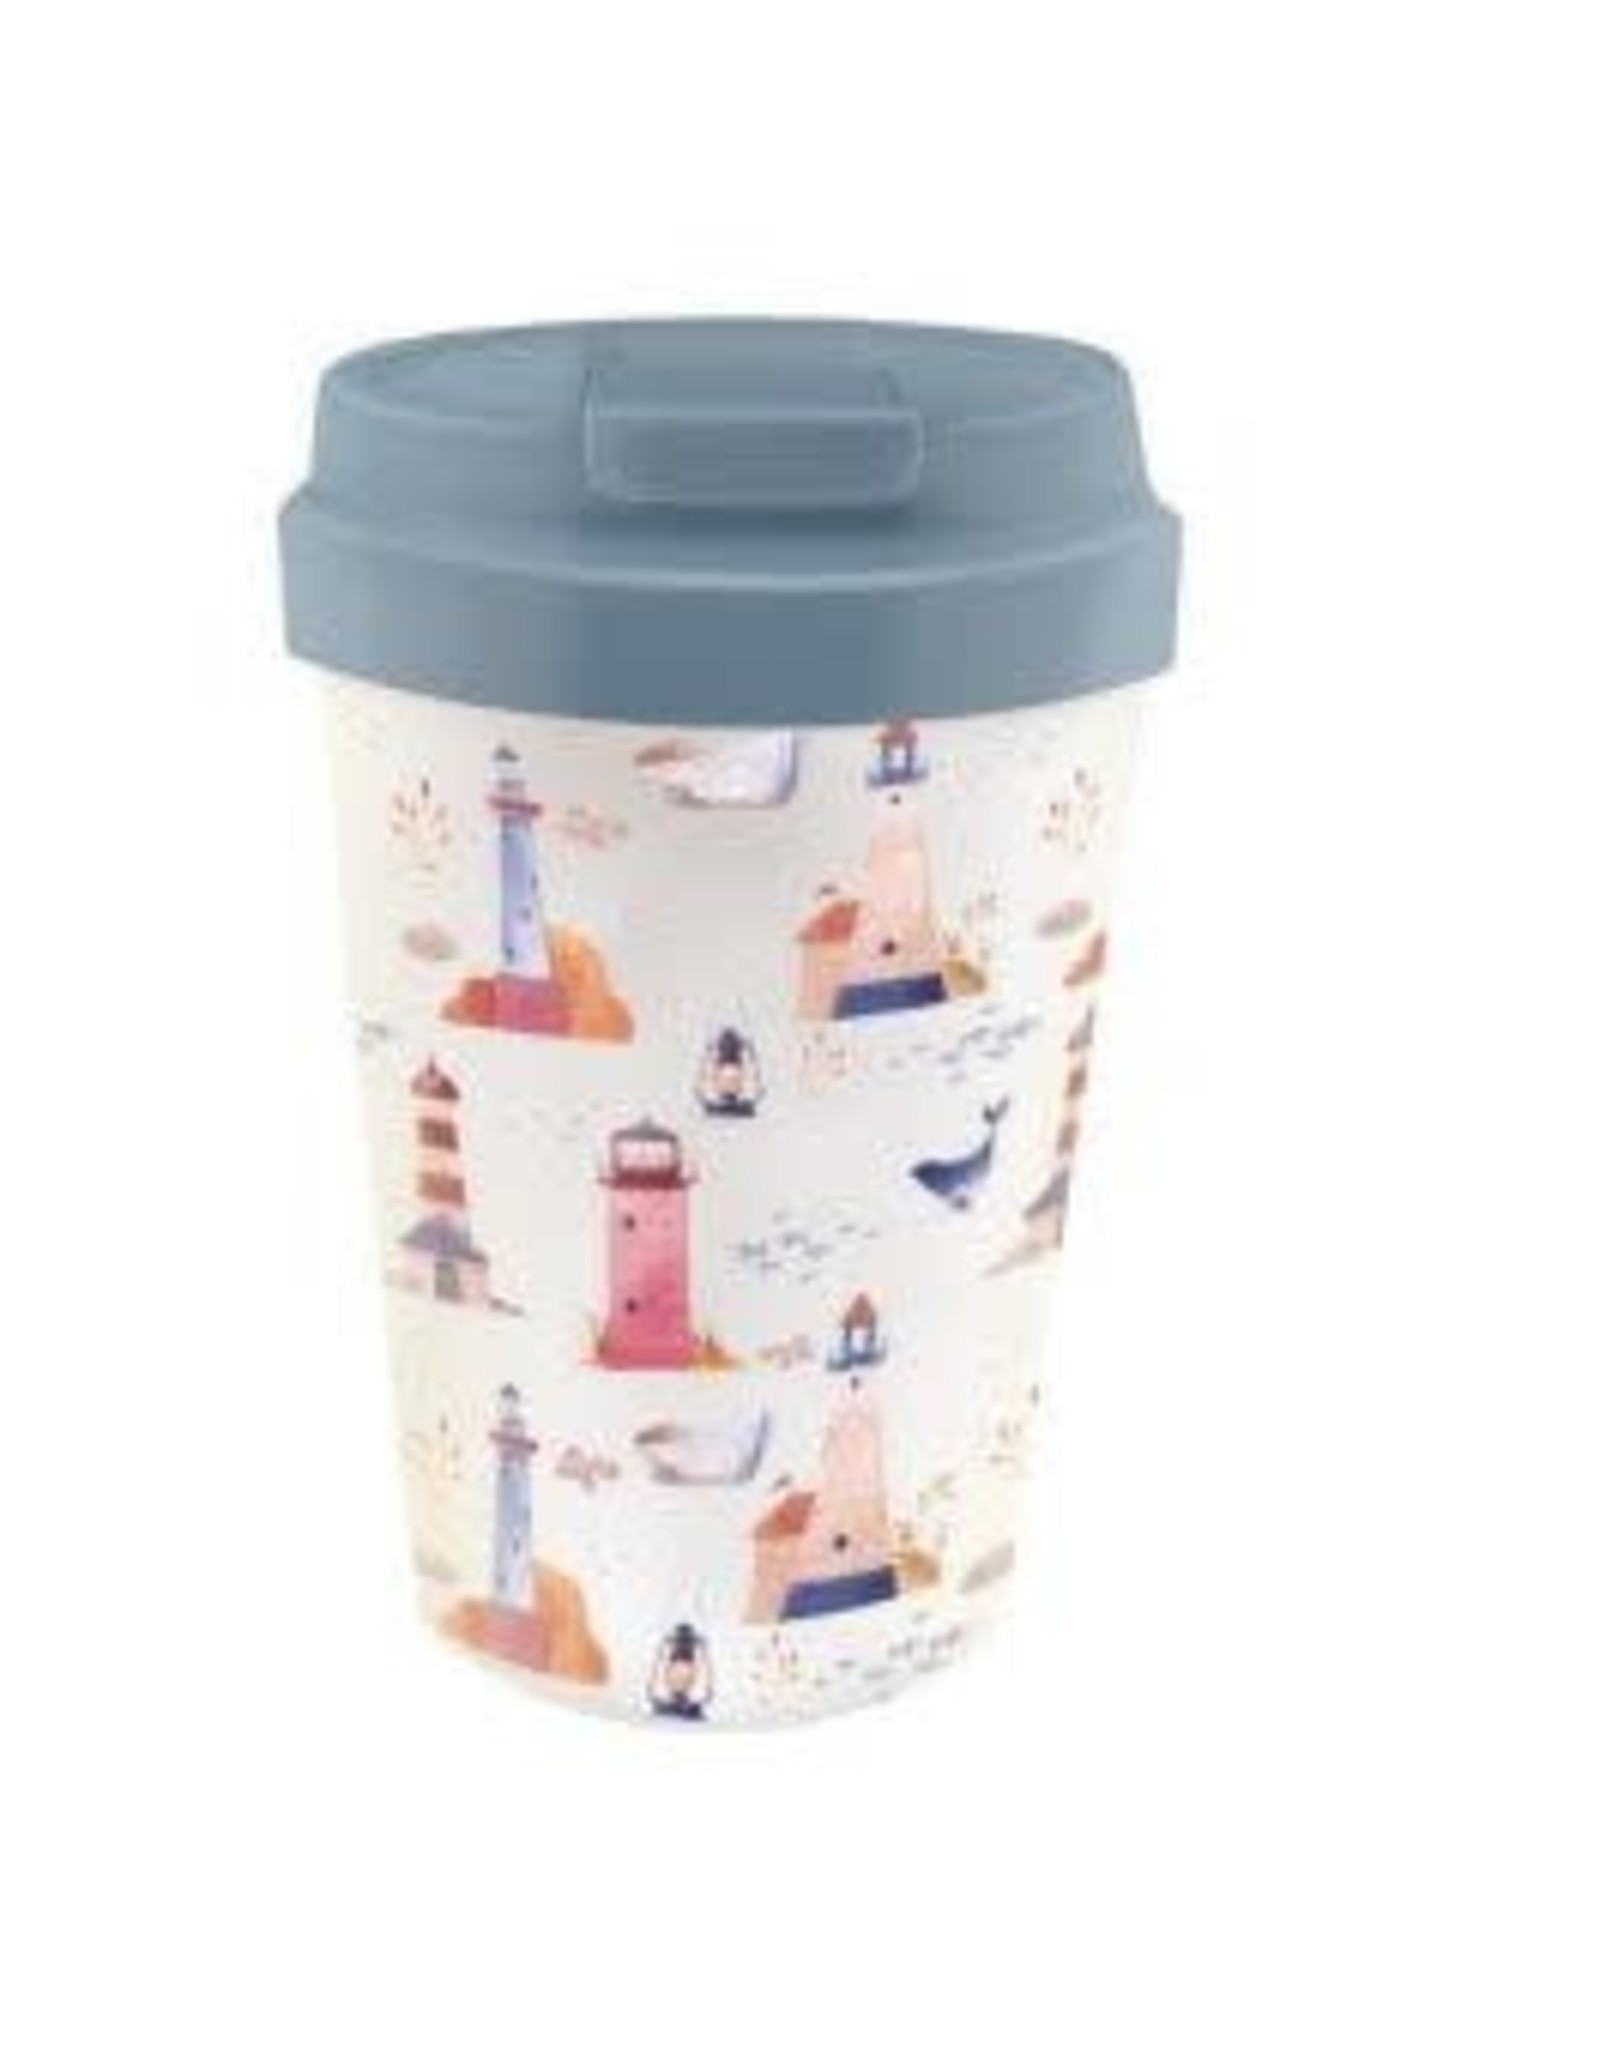 easy cup with lighthouse design